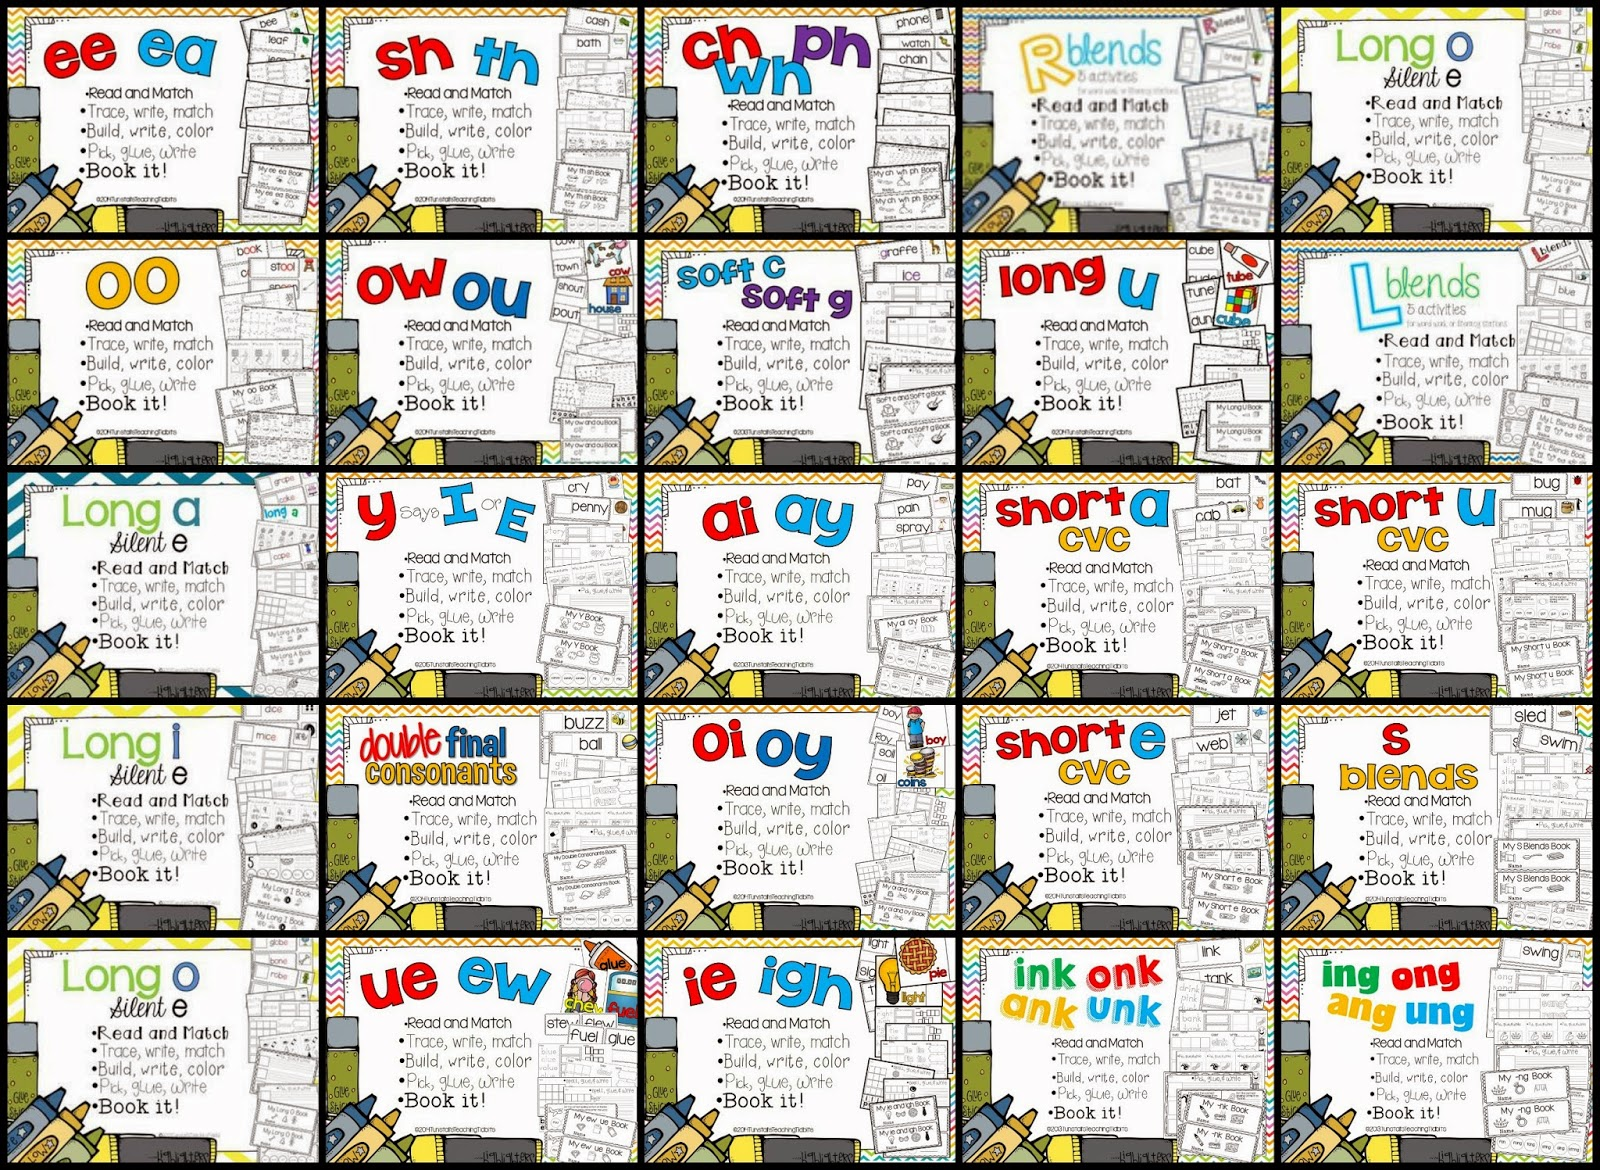 https://www.teacherspayteachers.com/Store/Reagan-Tunstall/Category/Phonics-Spelling